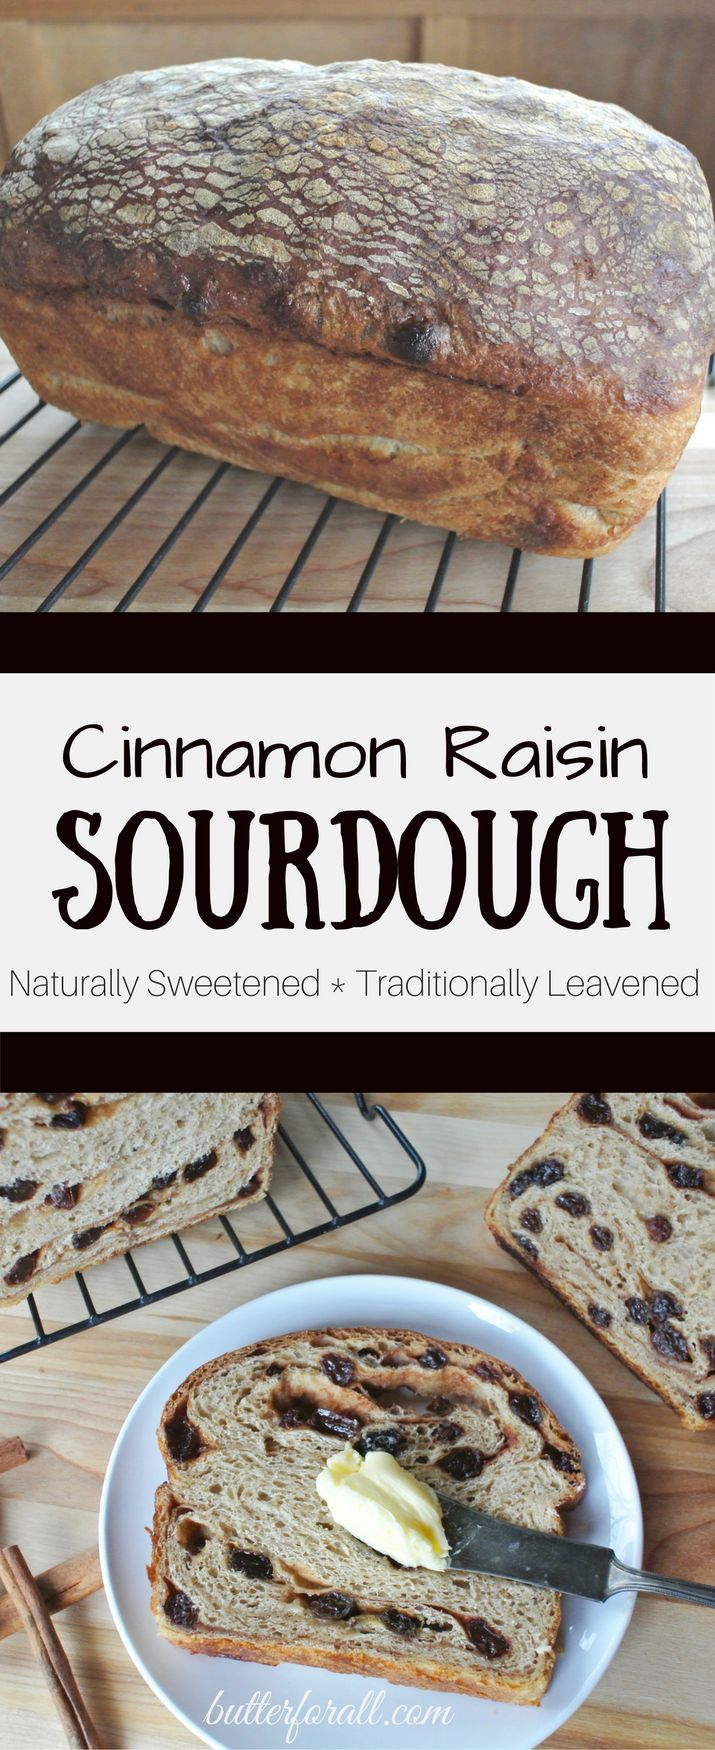 A traditional sourdough bread studded and swirled with plump raisins, lots of cinnamon and sticky sweet maple syrup. Click to visit the ButterForAll blog and get the recipe!